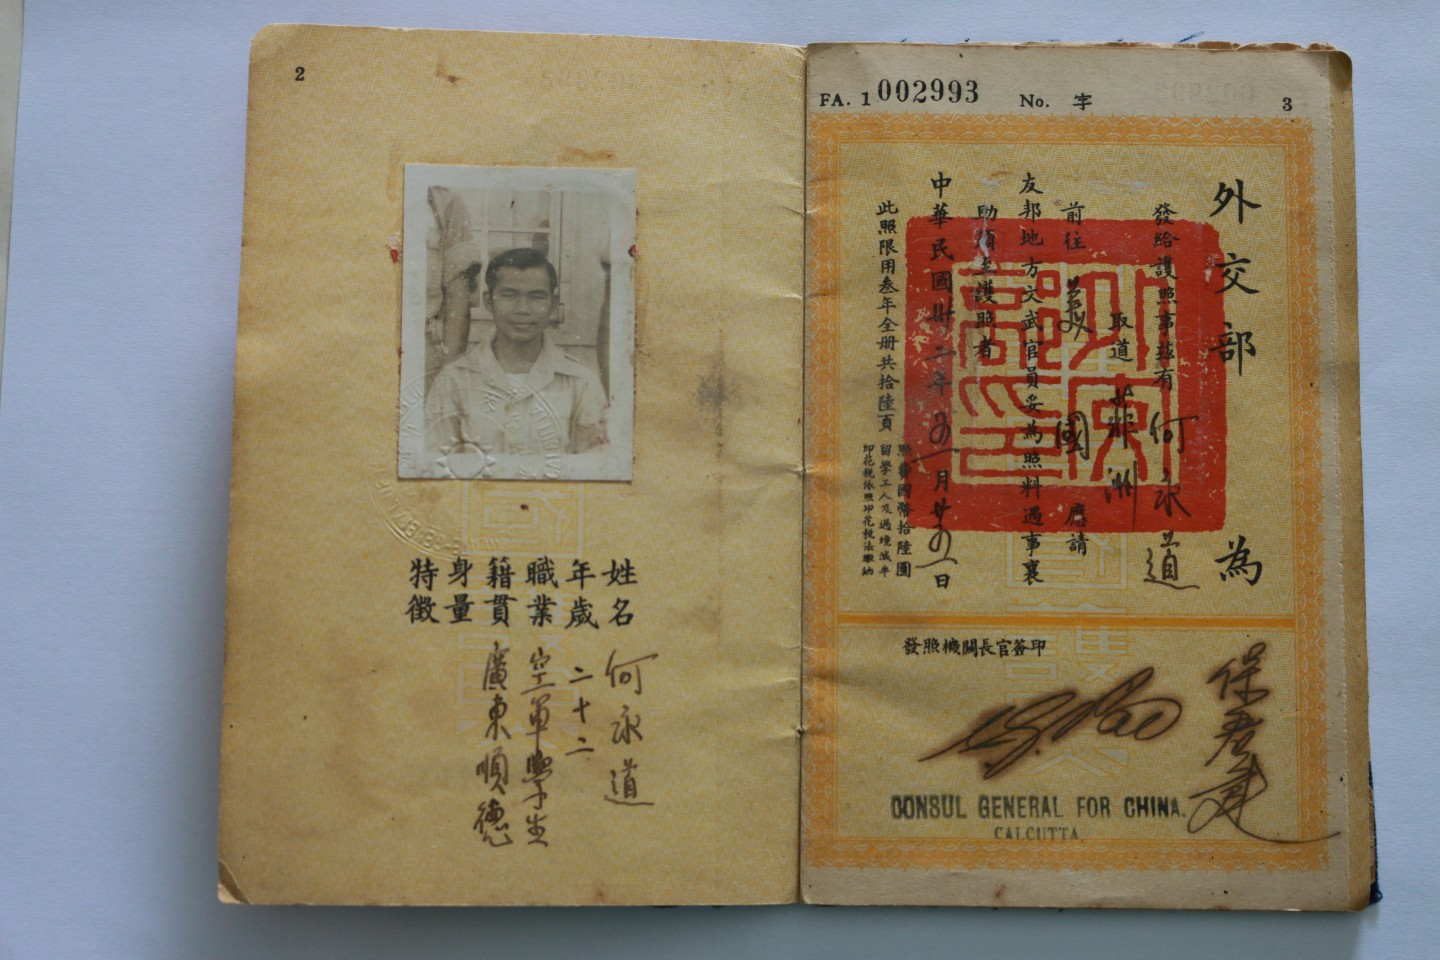 Page from Chinese Passport, 1943